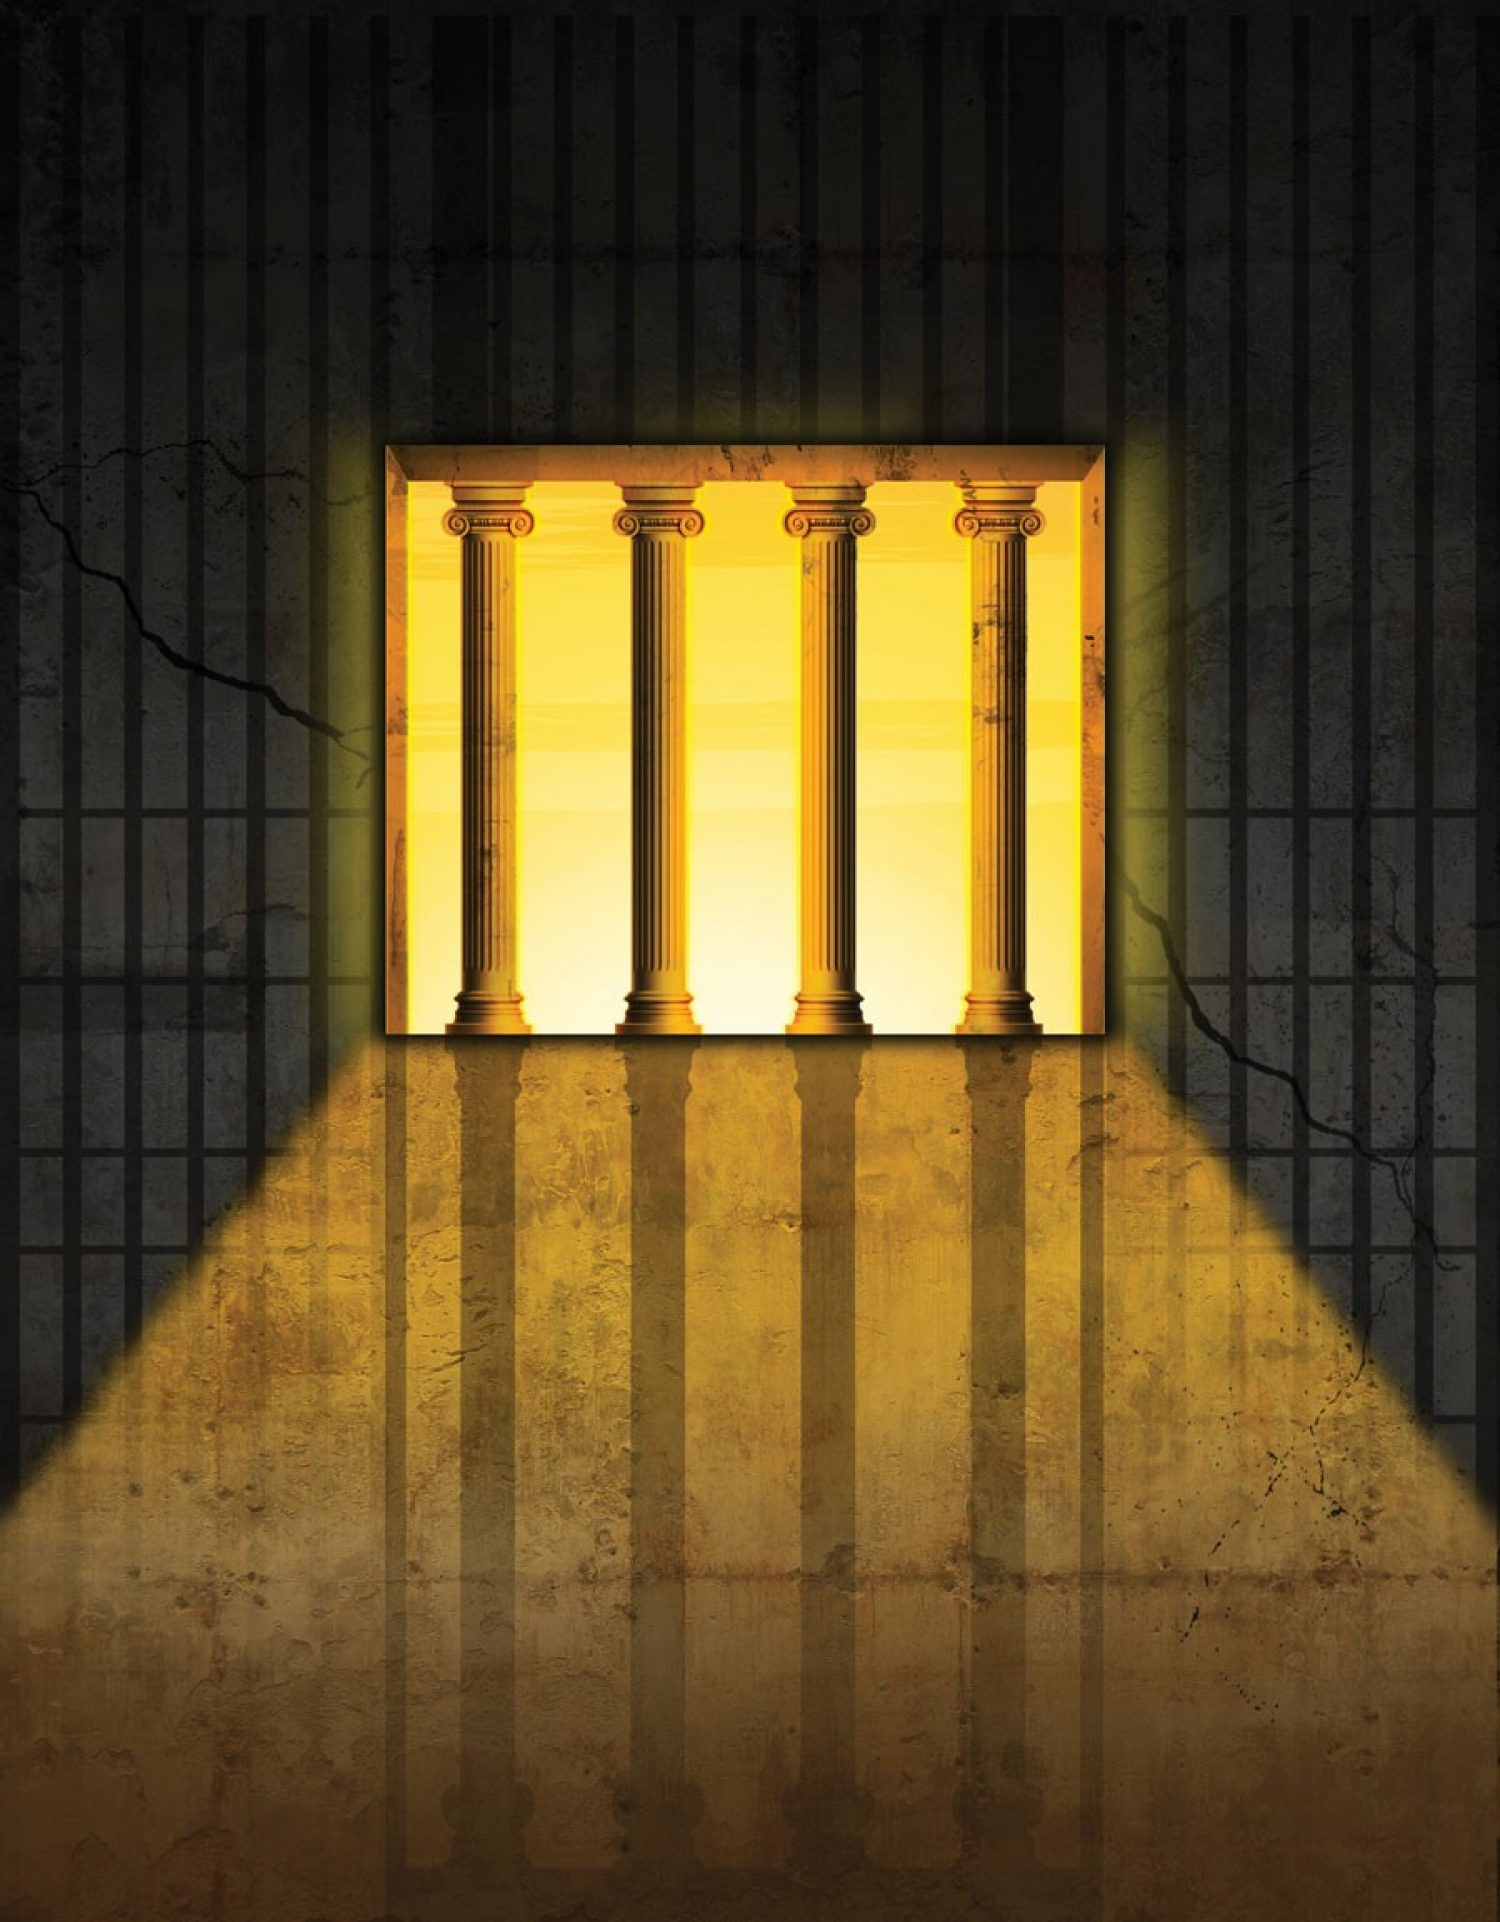 An illustration showing prison bars superimposed over columns invoking the Halls of Justice.